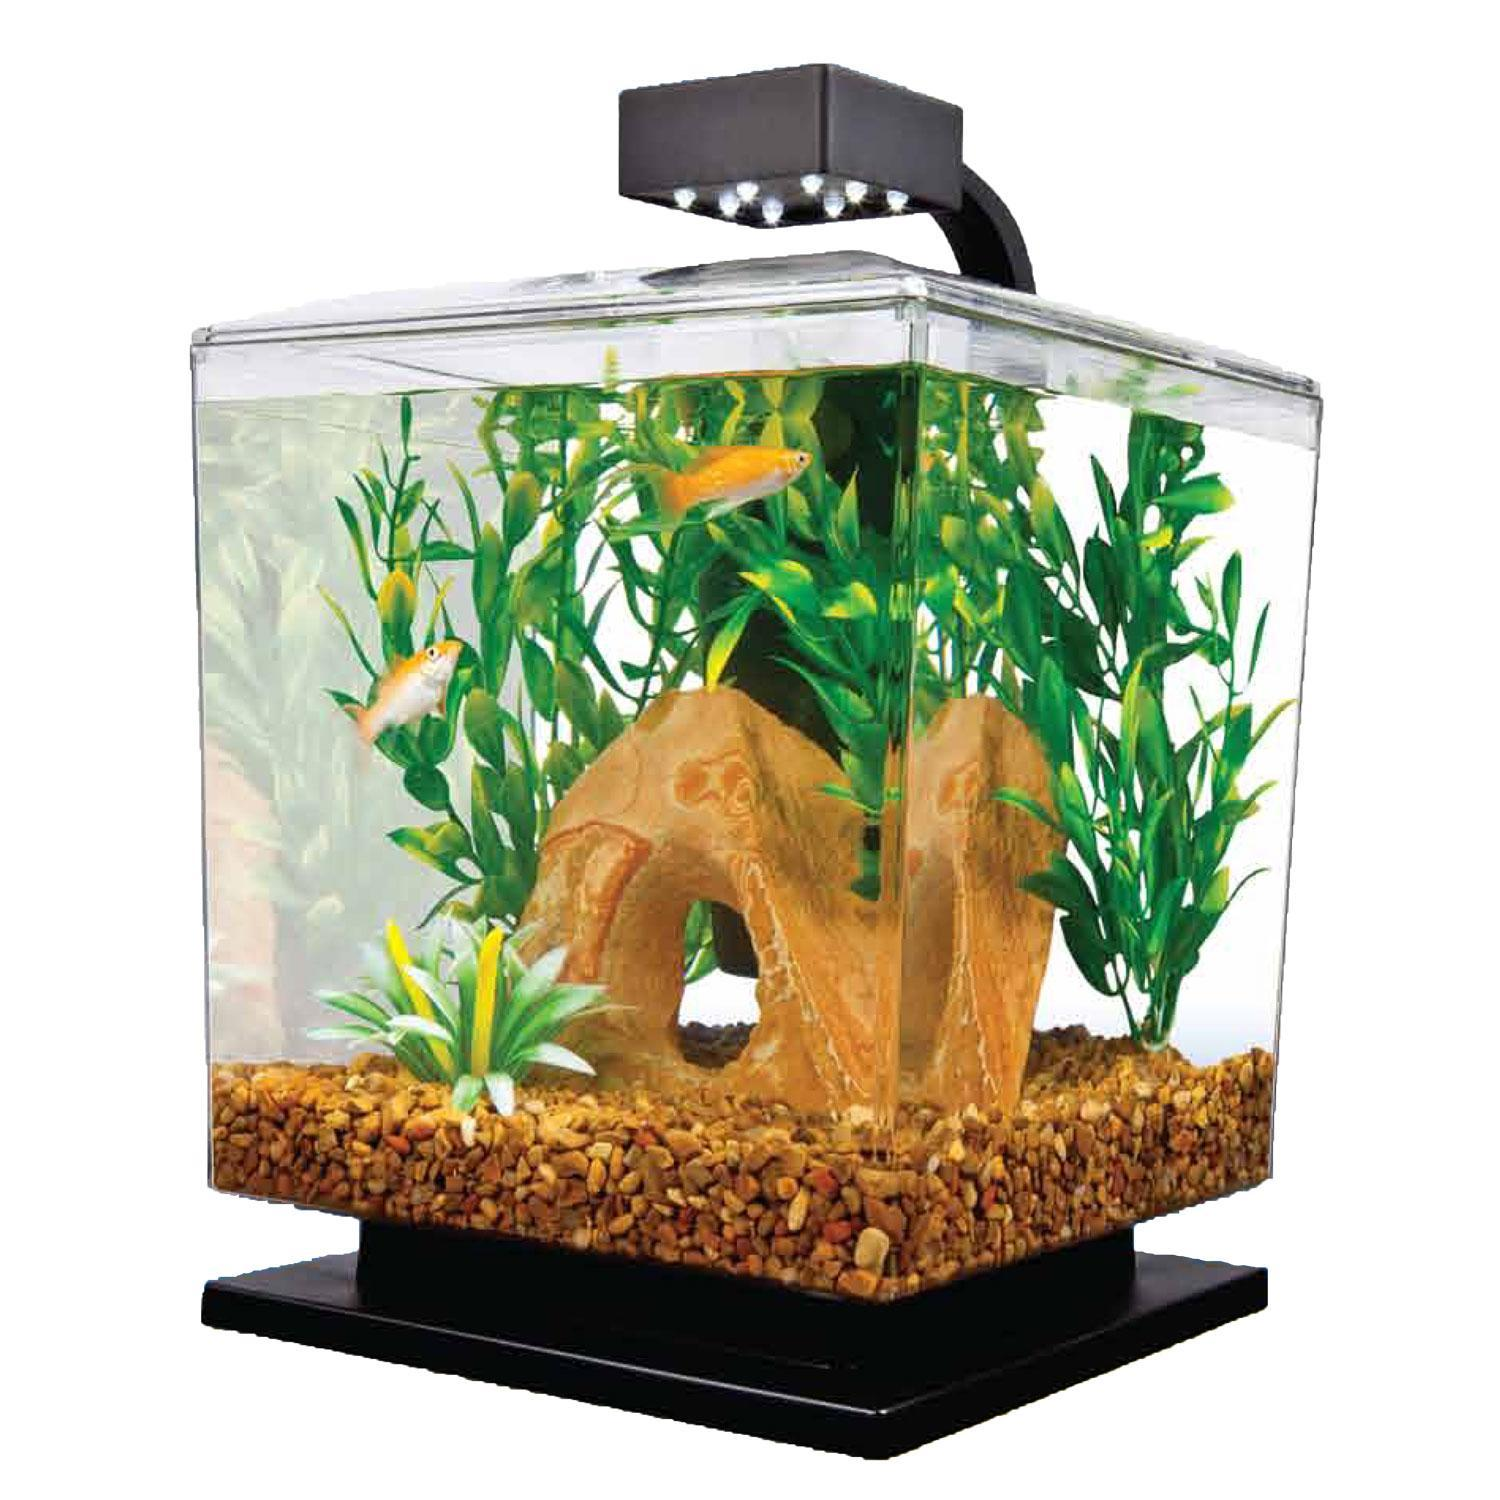 tetra 1 5 gallon led desktop aquarium kit from